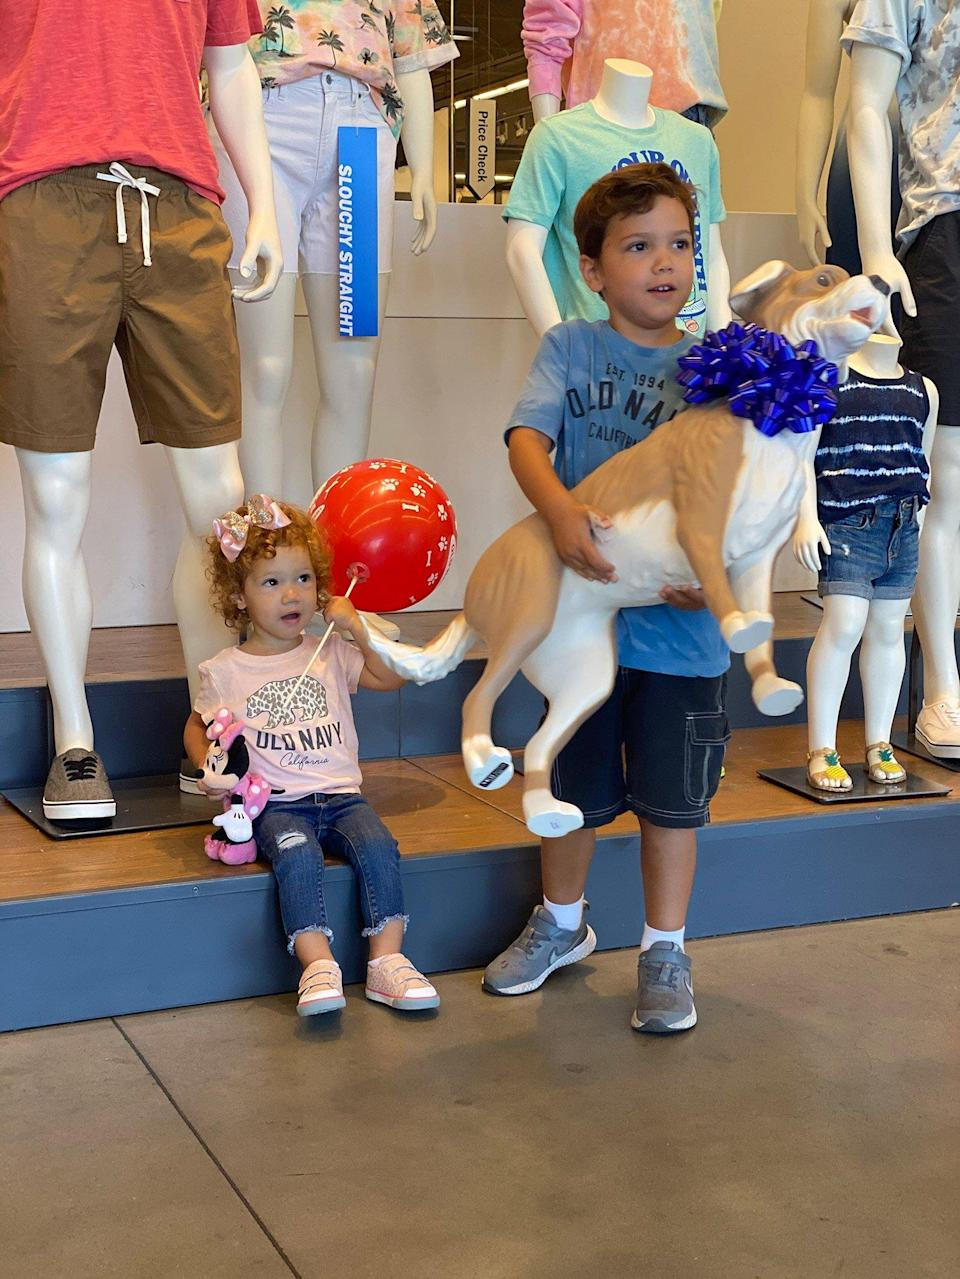 Old Navy Surprises 5-Year-Old Boy with Autism with 'Magic' Store Dog That Brings Him Joy